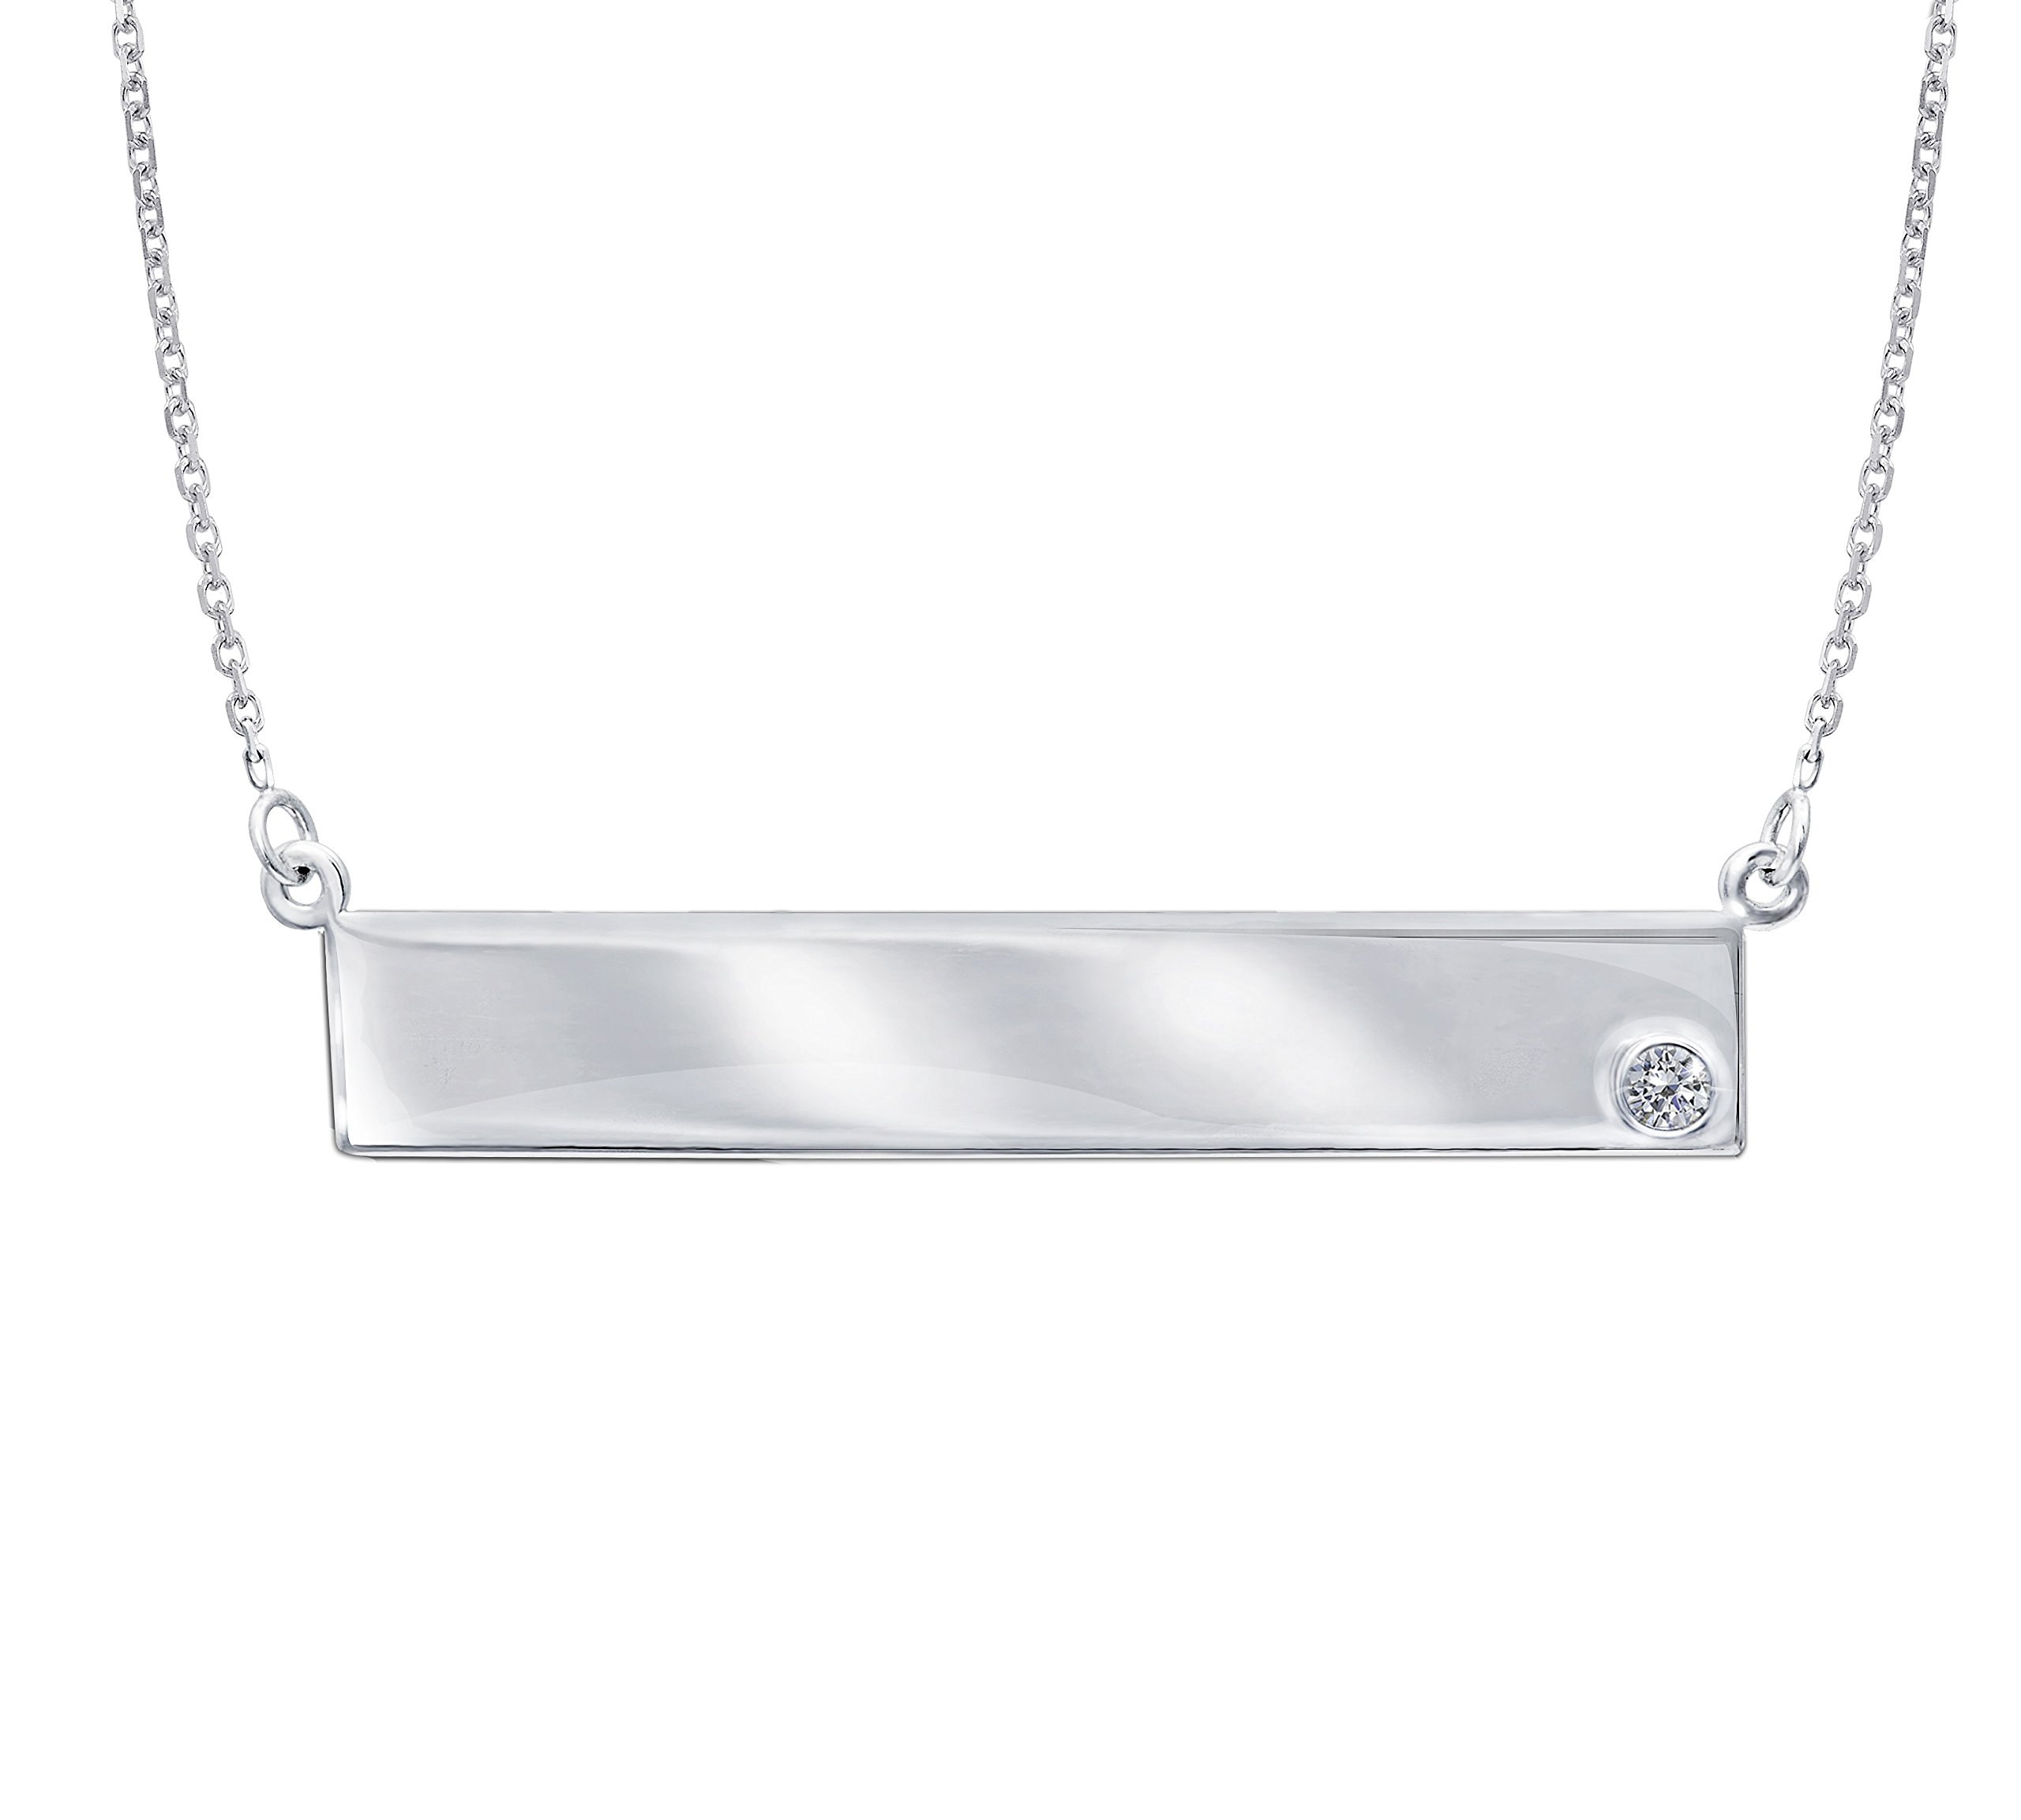 NAME PLATE NECKLACE, 14KT GOLD & DIAMOND NAME PLATE NECKLACE 18'' INCHES